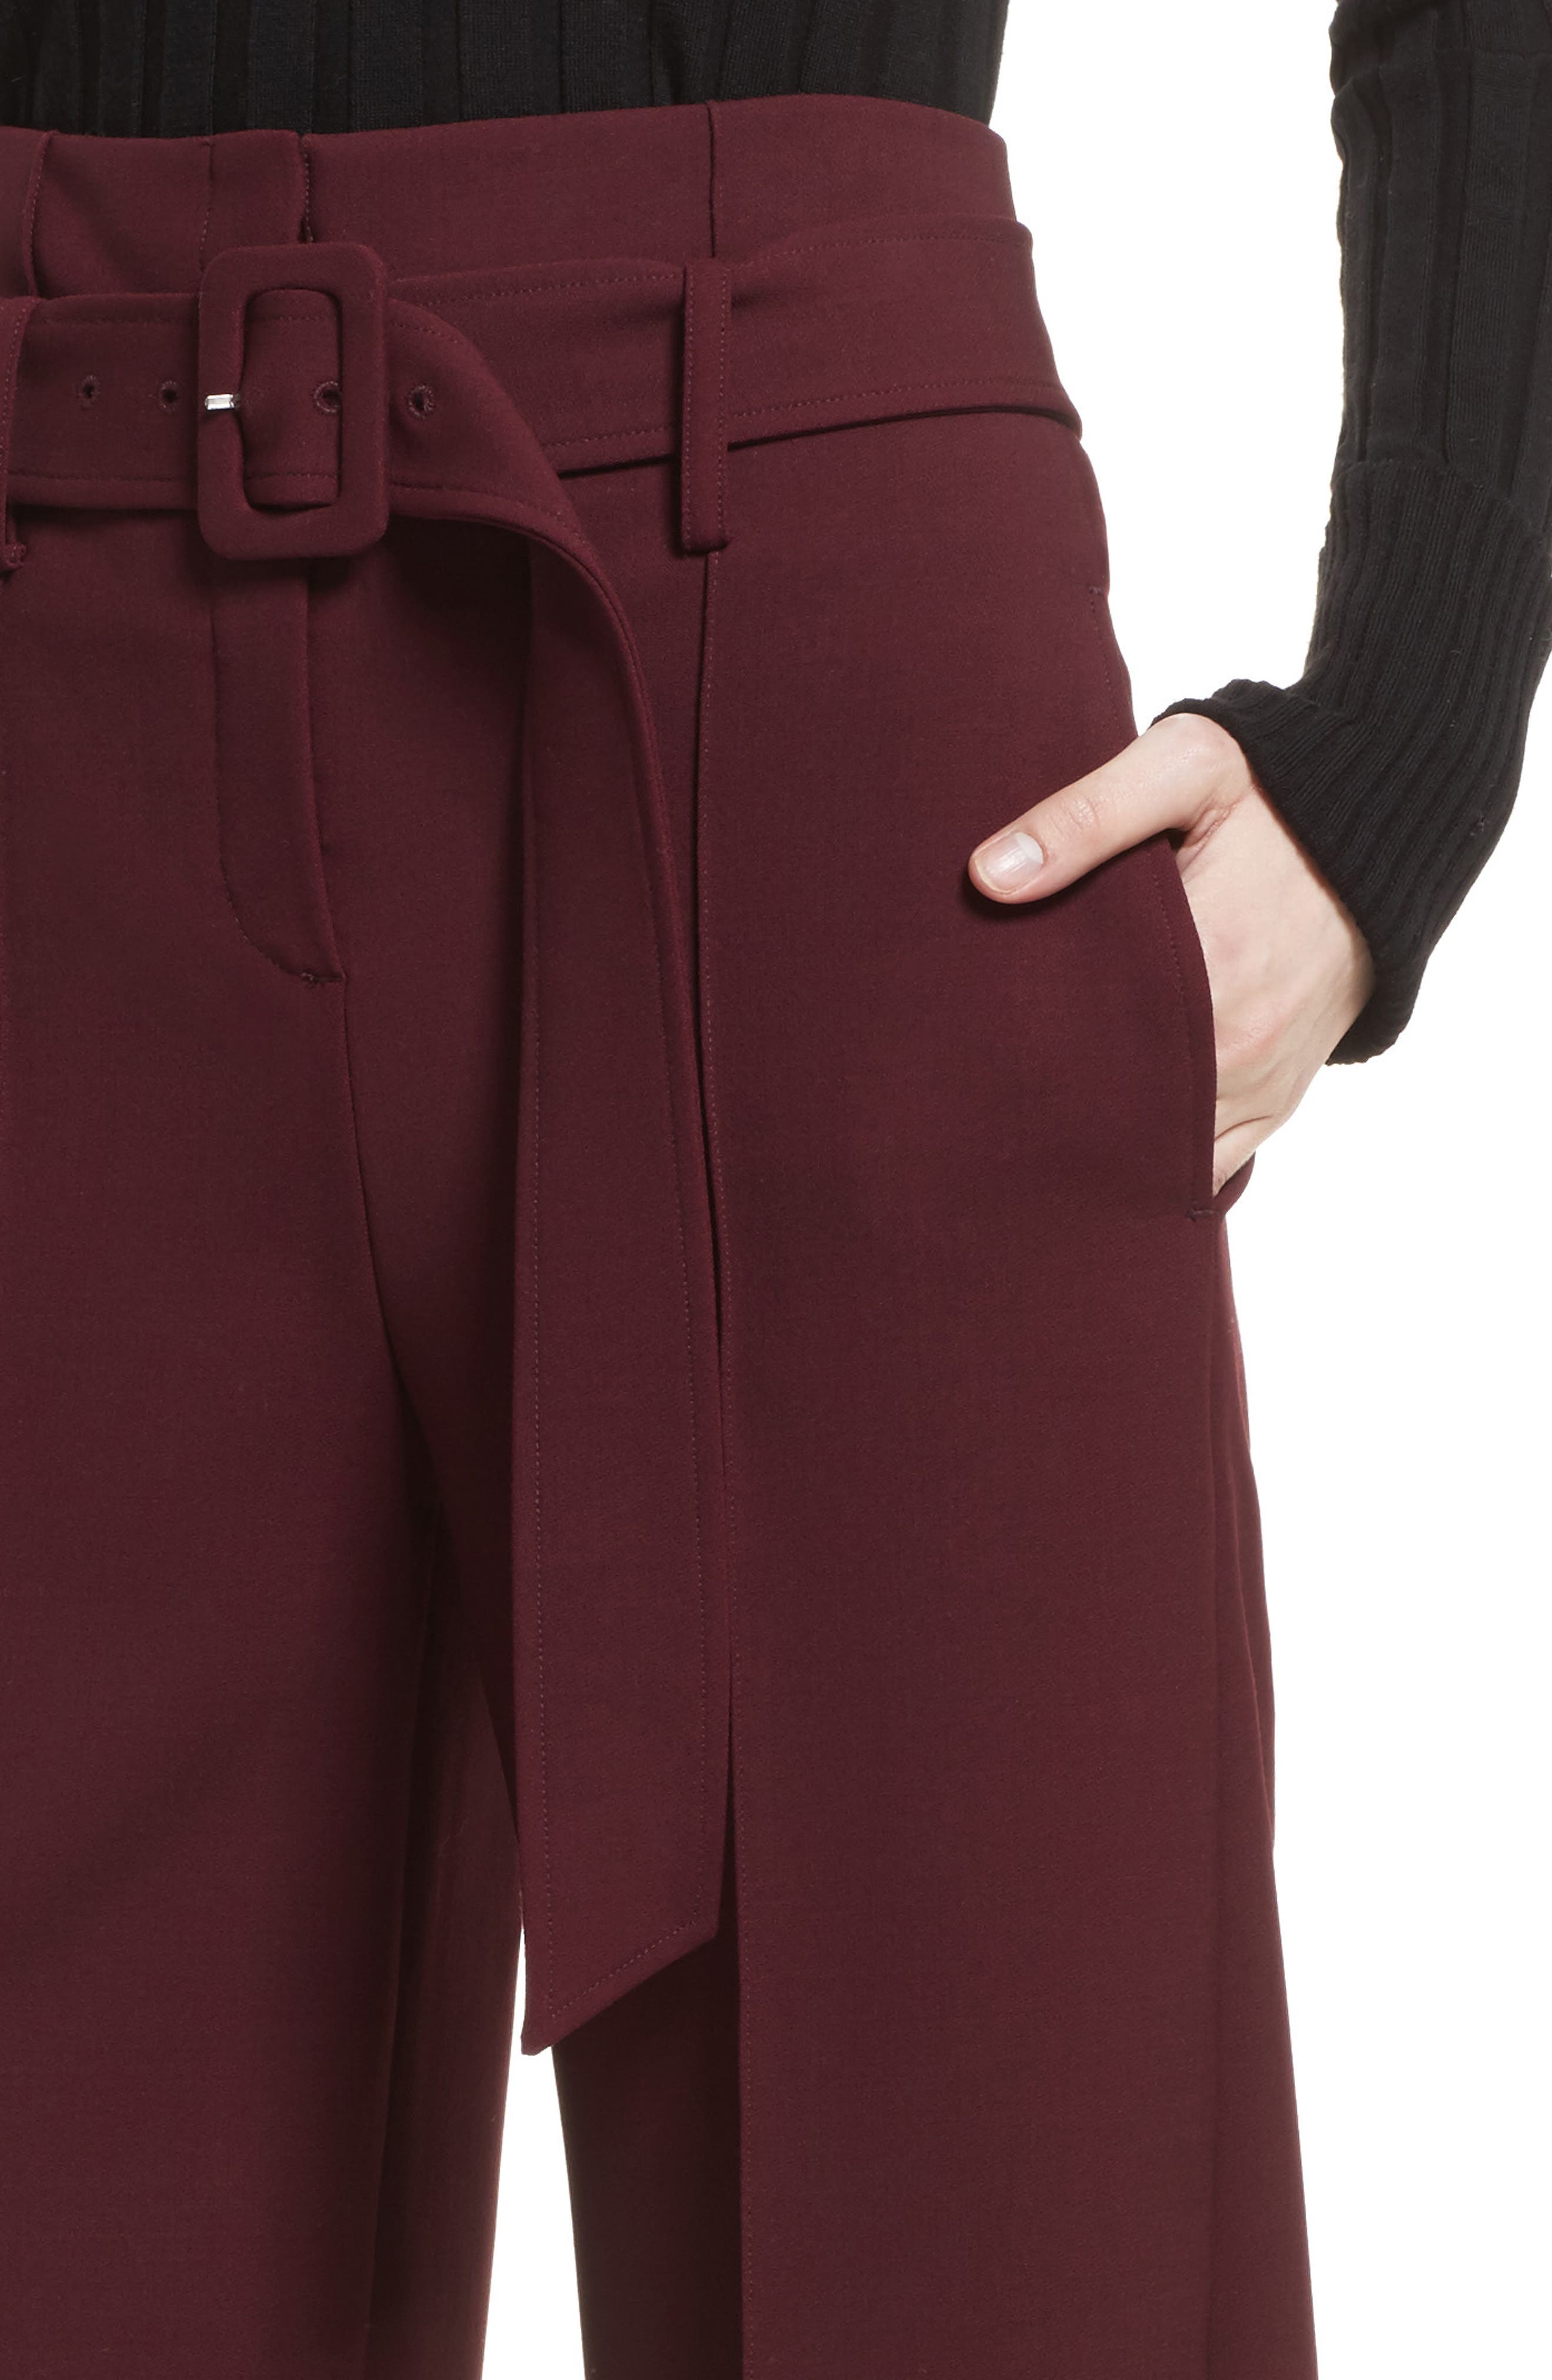 Camogie High Waist Belted Pants,                             Alternate thumbnail 4, color,                             933